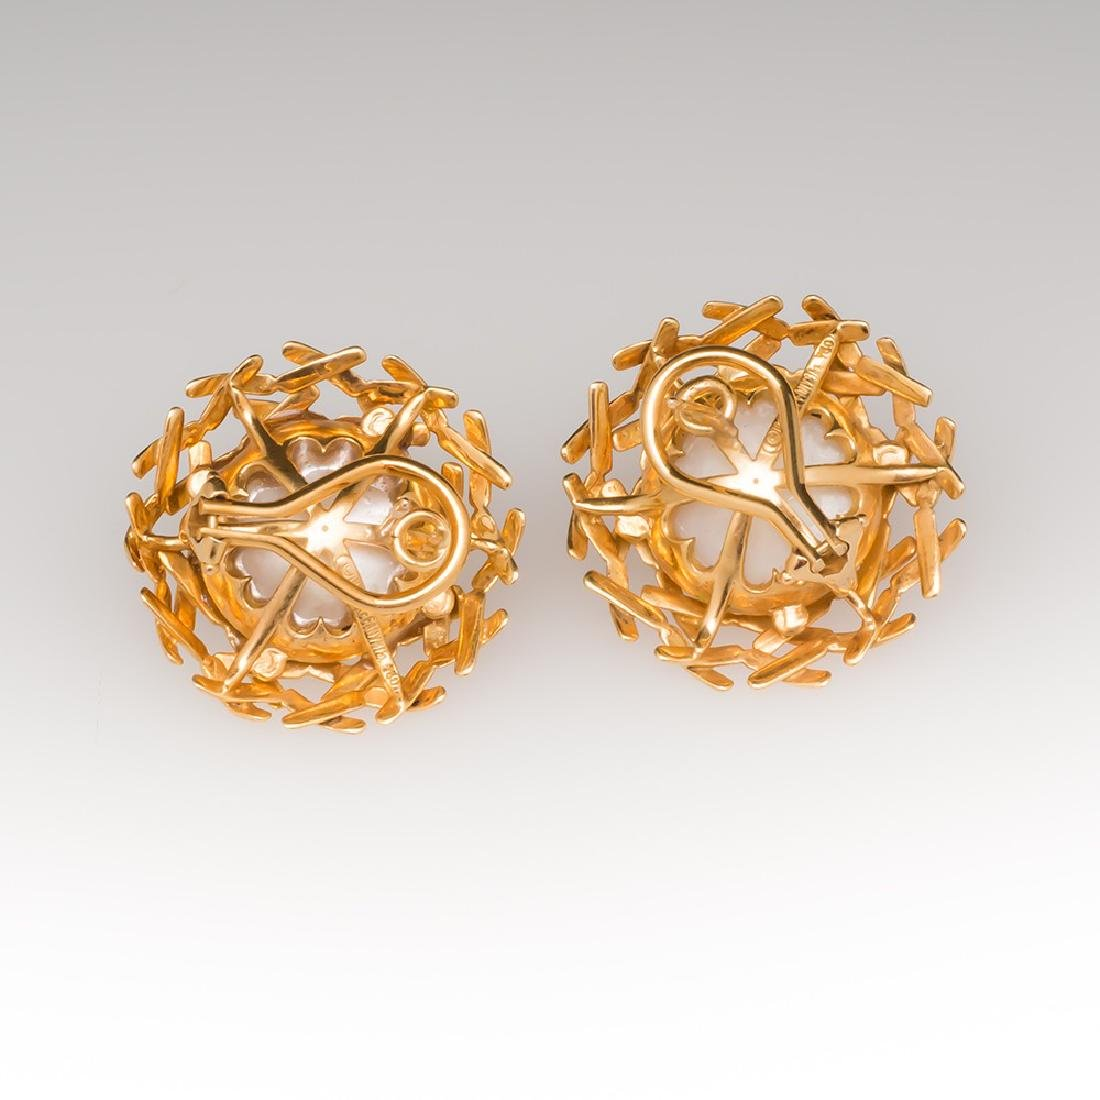 Tiffany & Co 18K Gold Mabe Pearl Earring Clips - 3